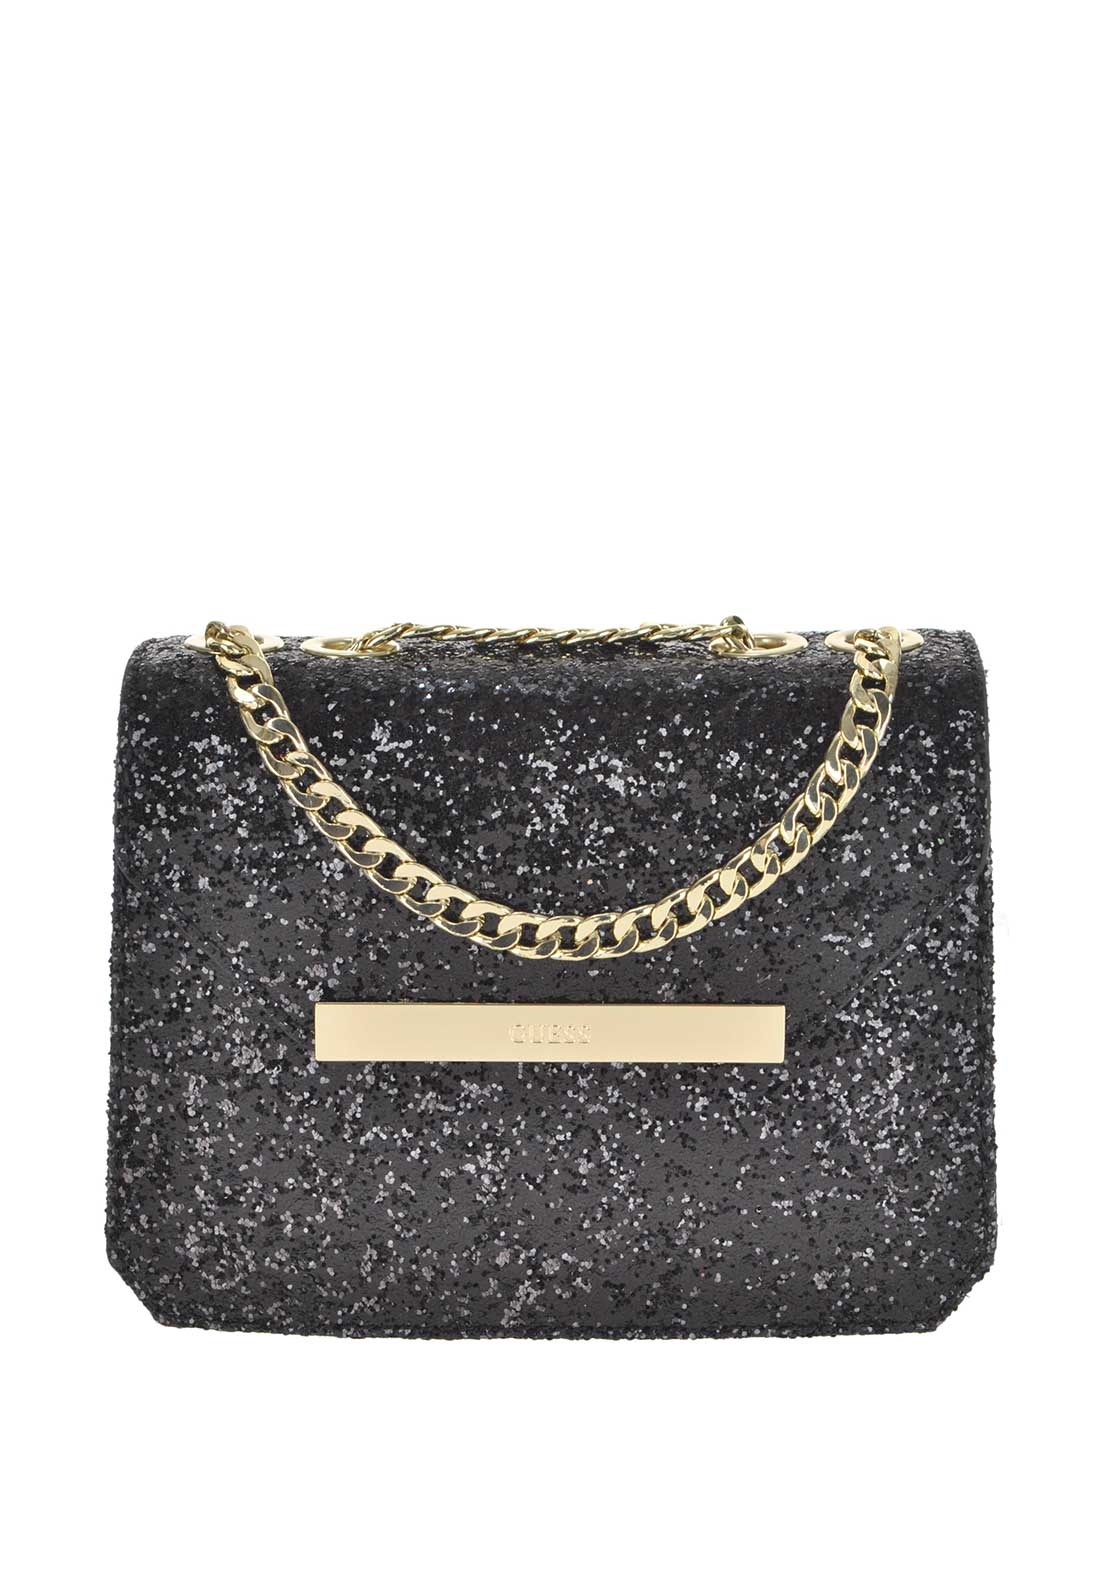 Guess Womens Famous Glitter Crossbody Bag, Black